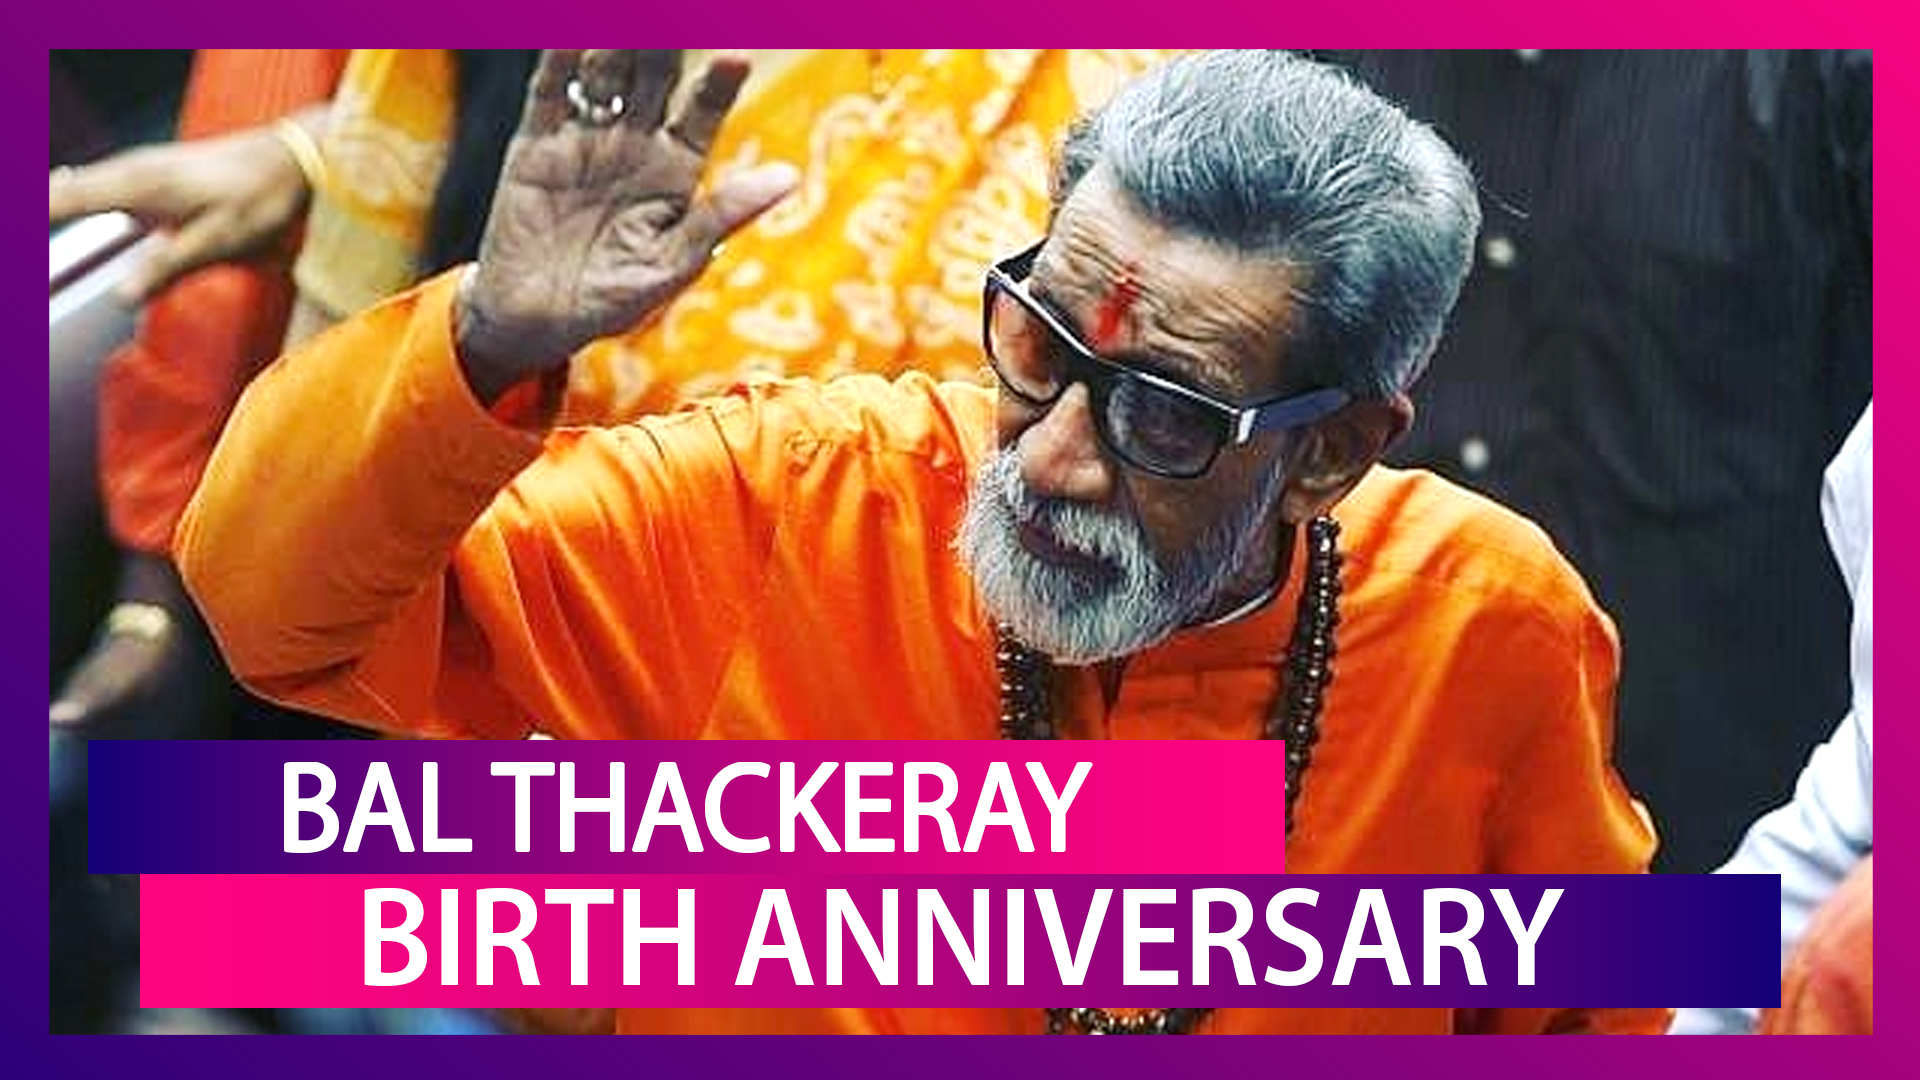 Bal Thackeray 94th Birth Anniversary: Maharashtra's Charismatic Leader & A Fiery Orator